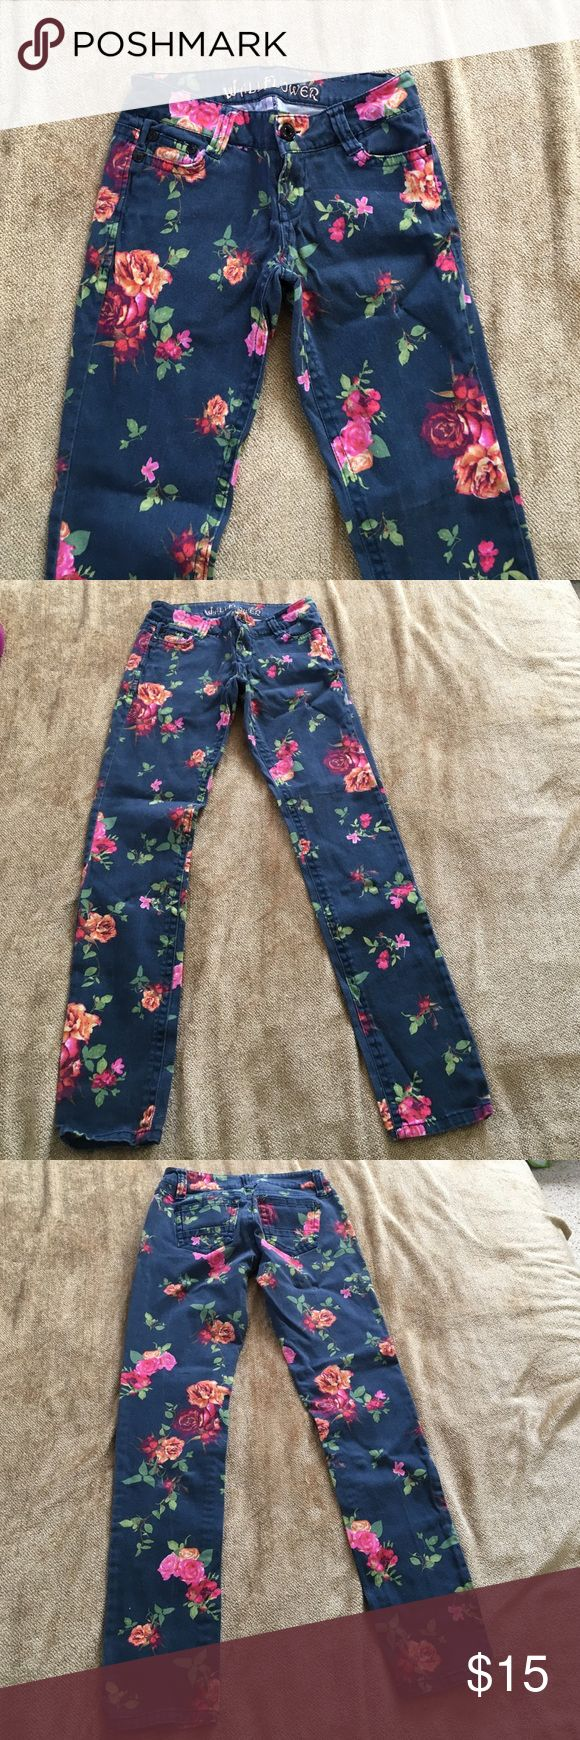 Floral jeans Floral skinny jeans wallflower brand size 1 inseam is 29 inches 98% cotton 2% spandex Wallflower Jeans Skinny